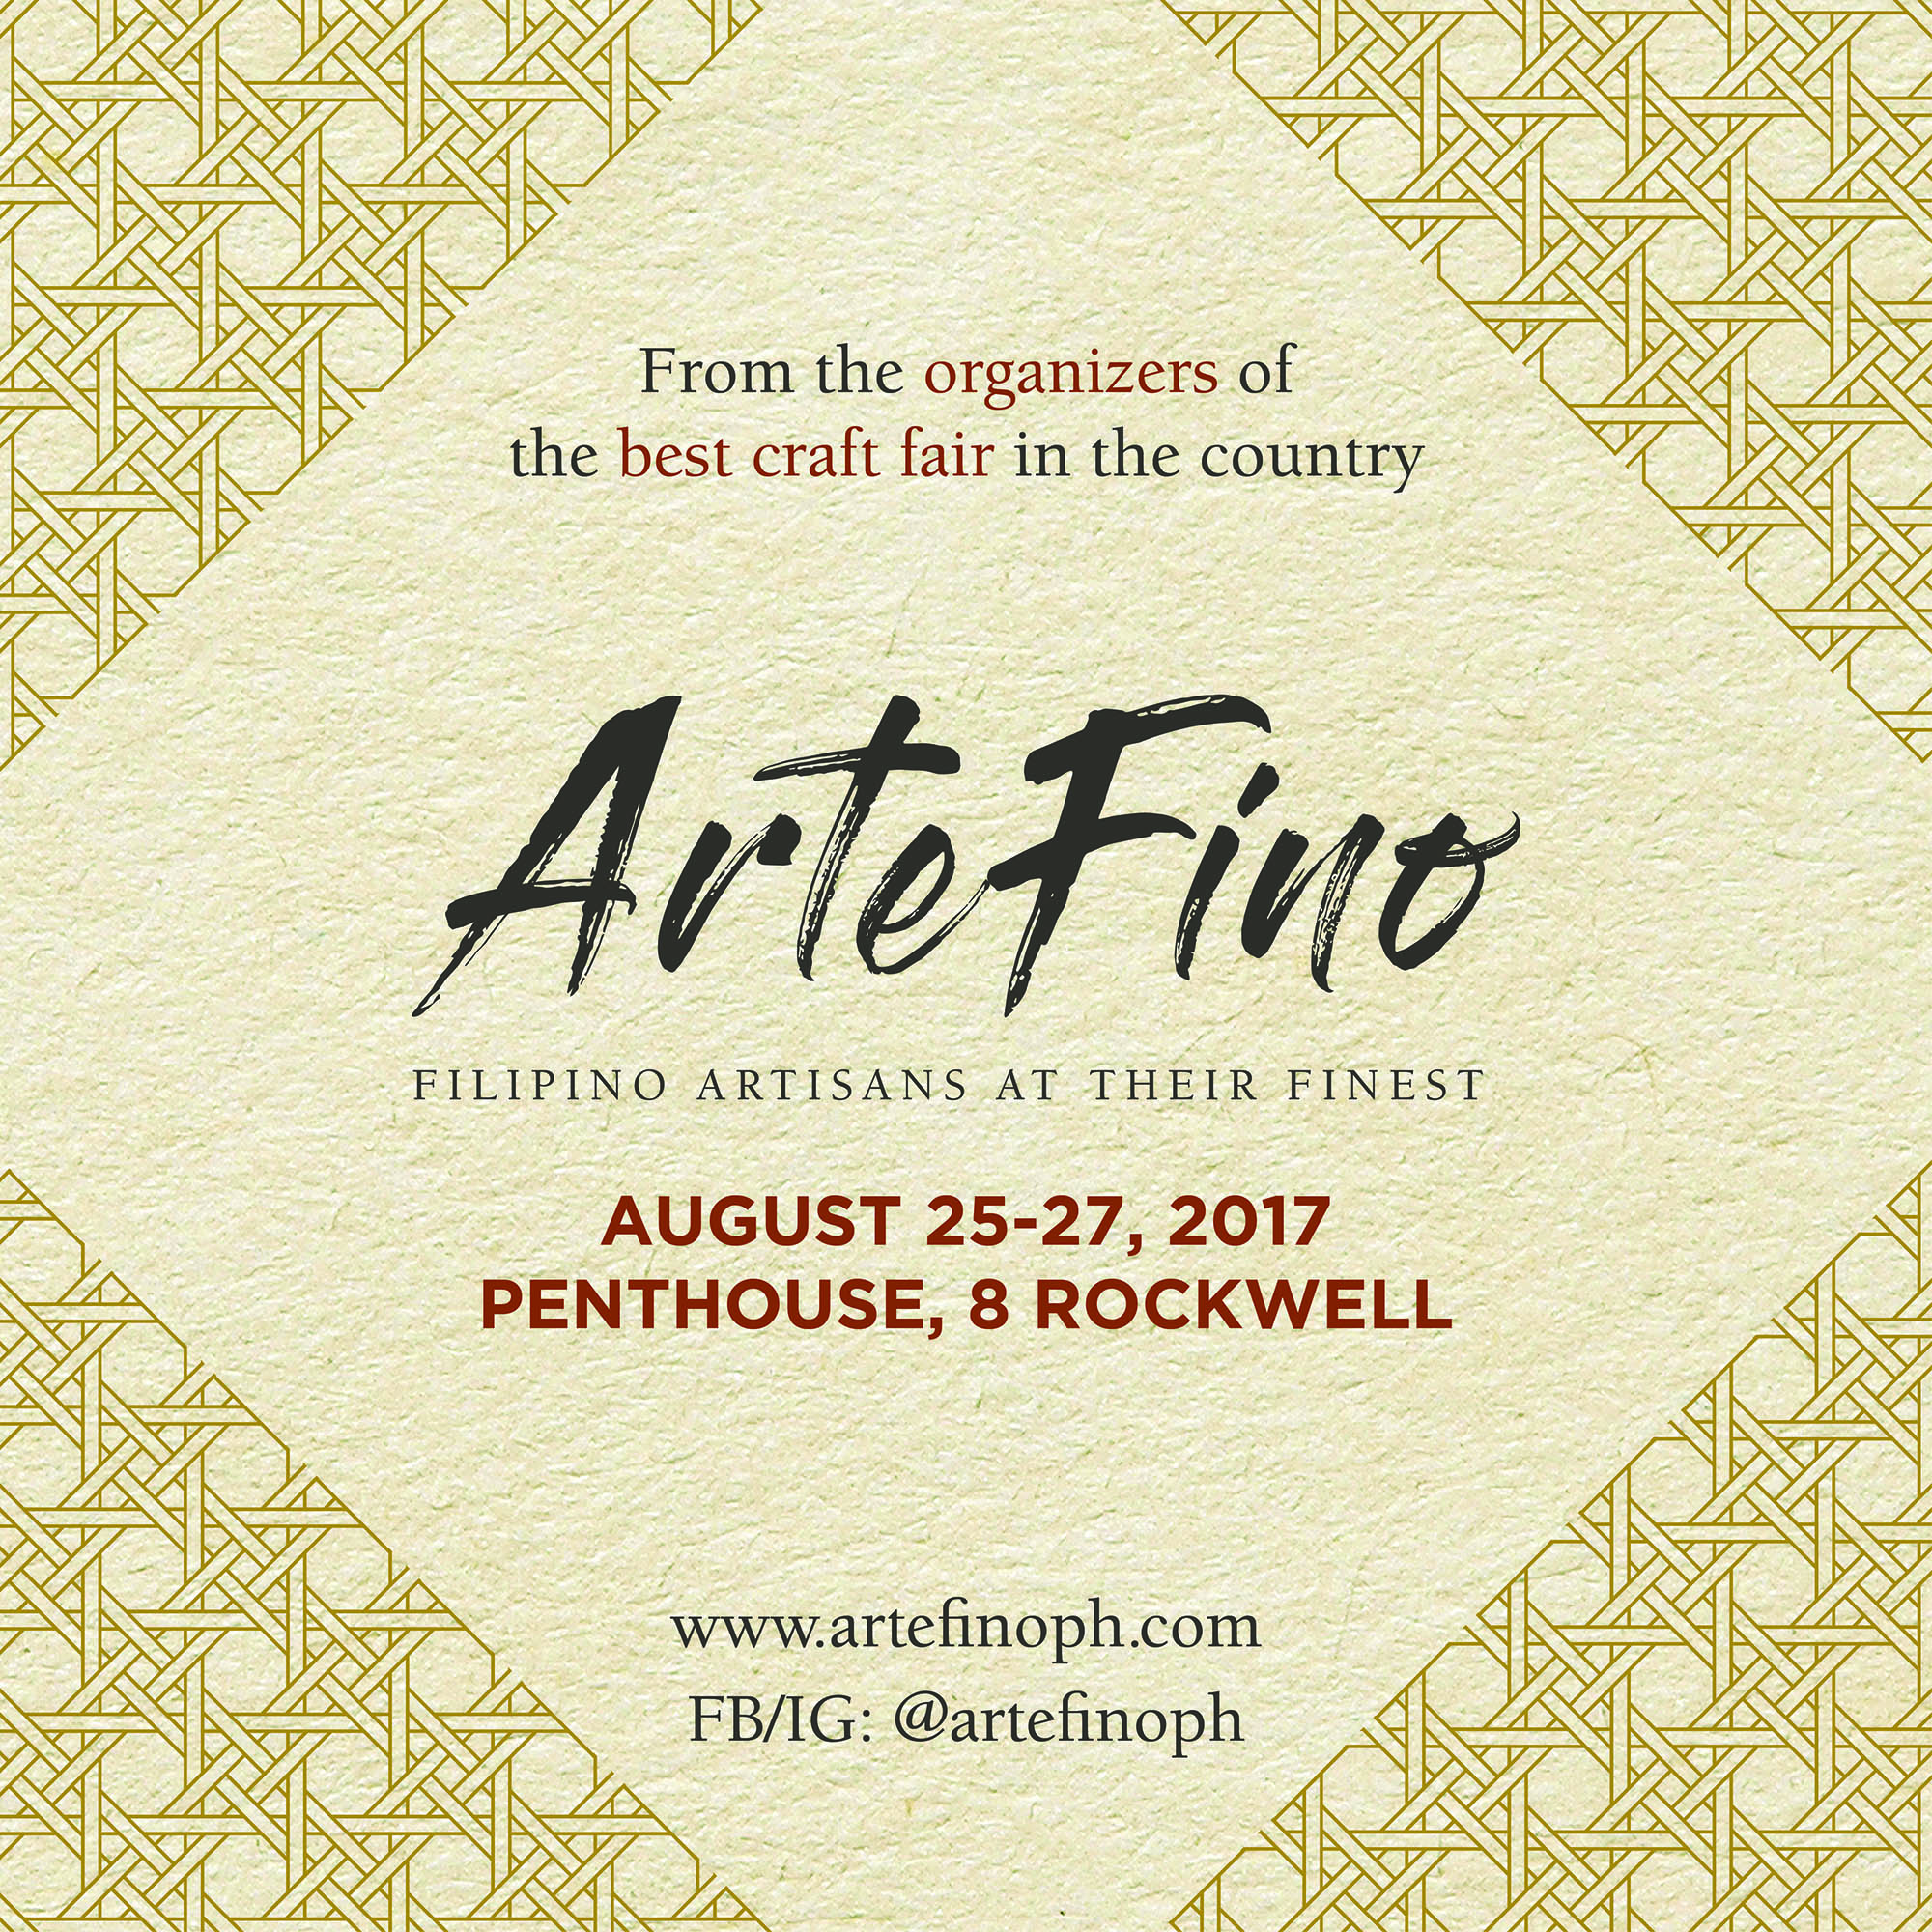 ArteFino: Getting to the heart of Filipino life and style